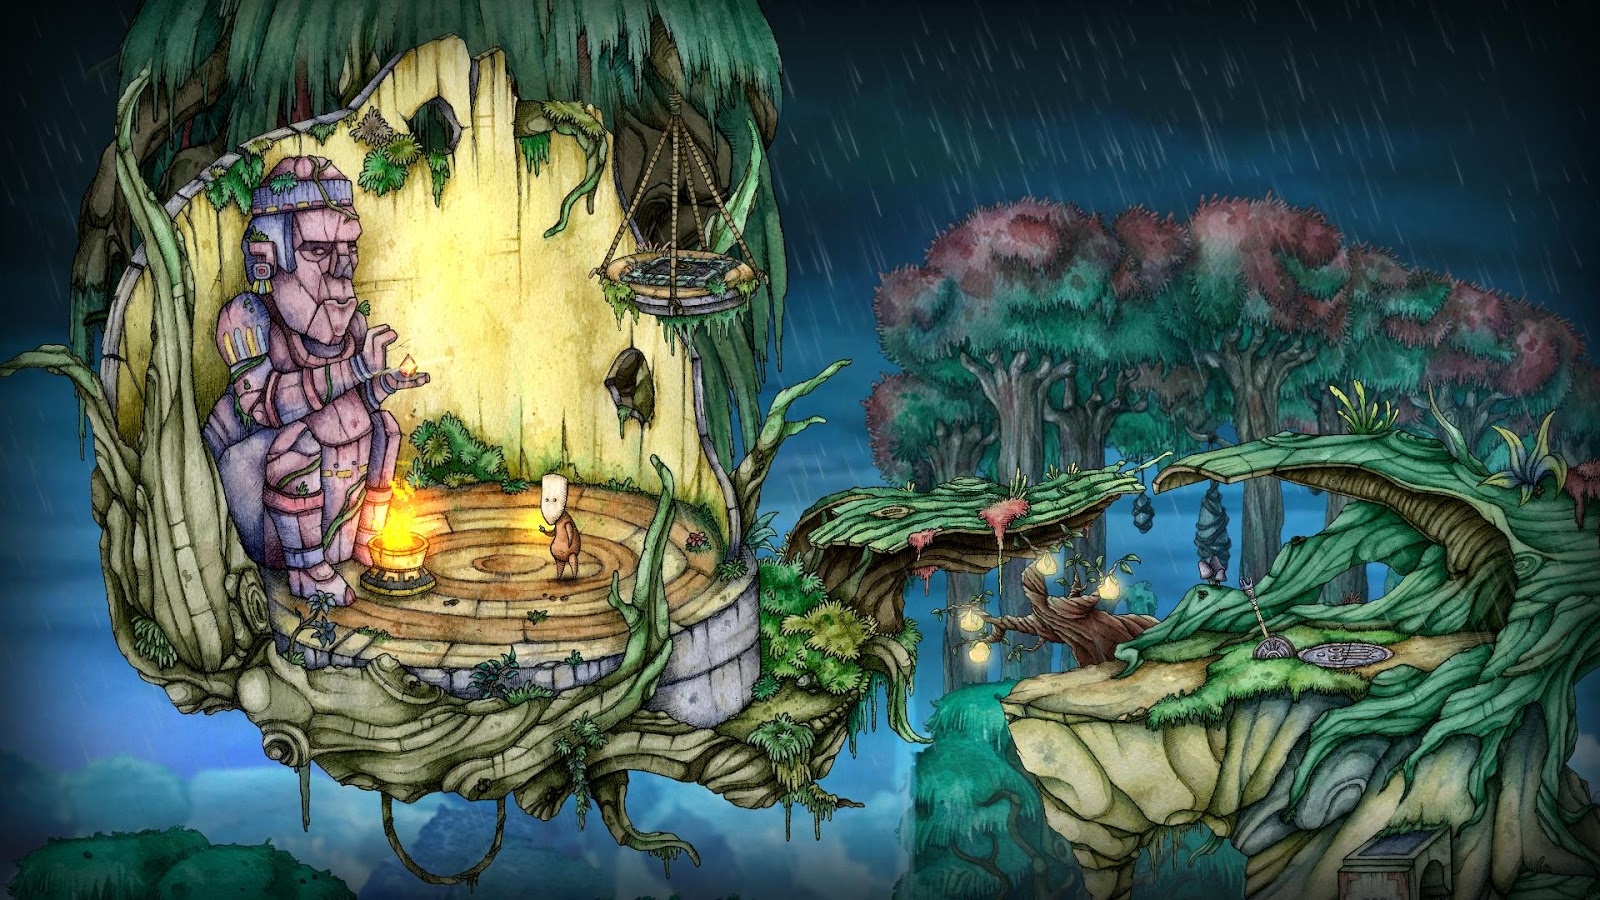 Candle PC Game Free Download Full Version for PC